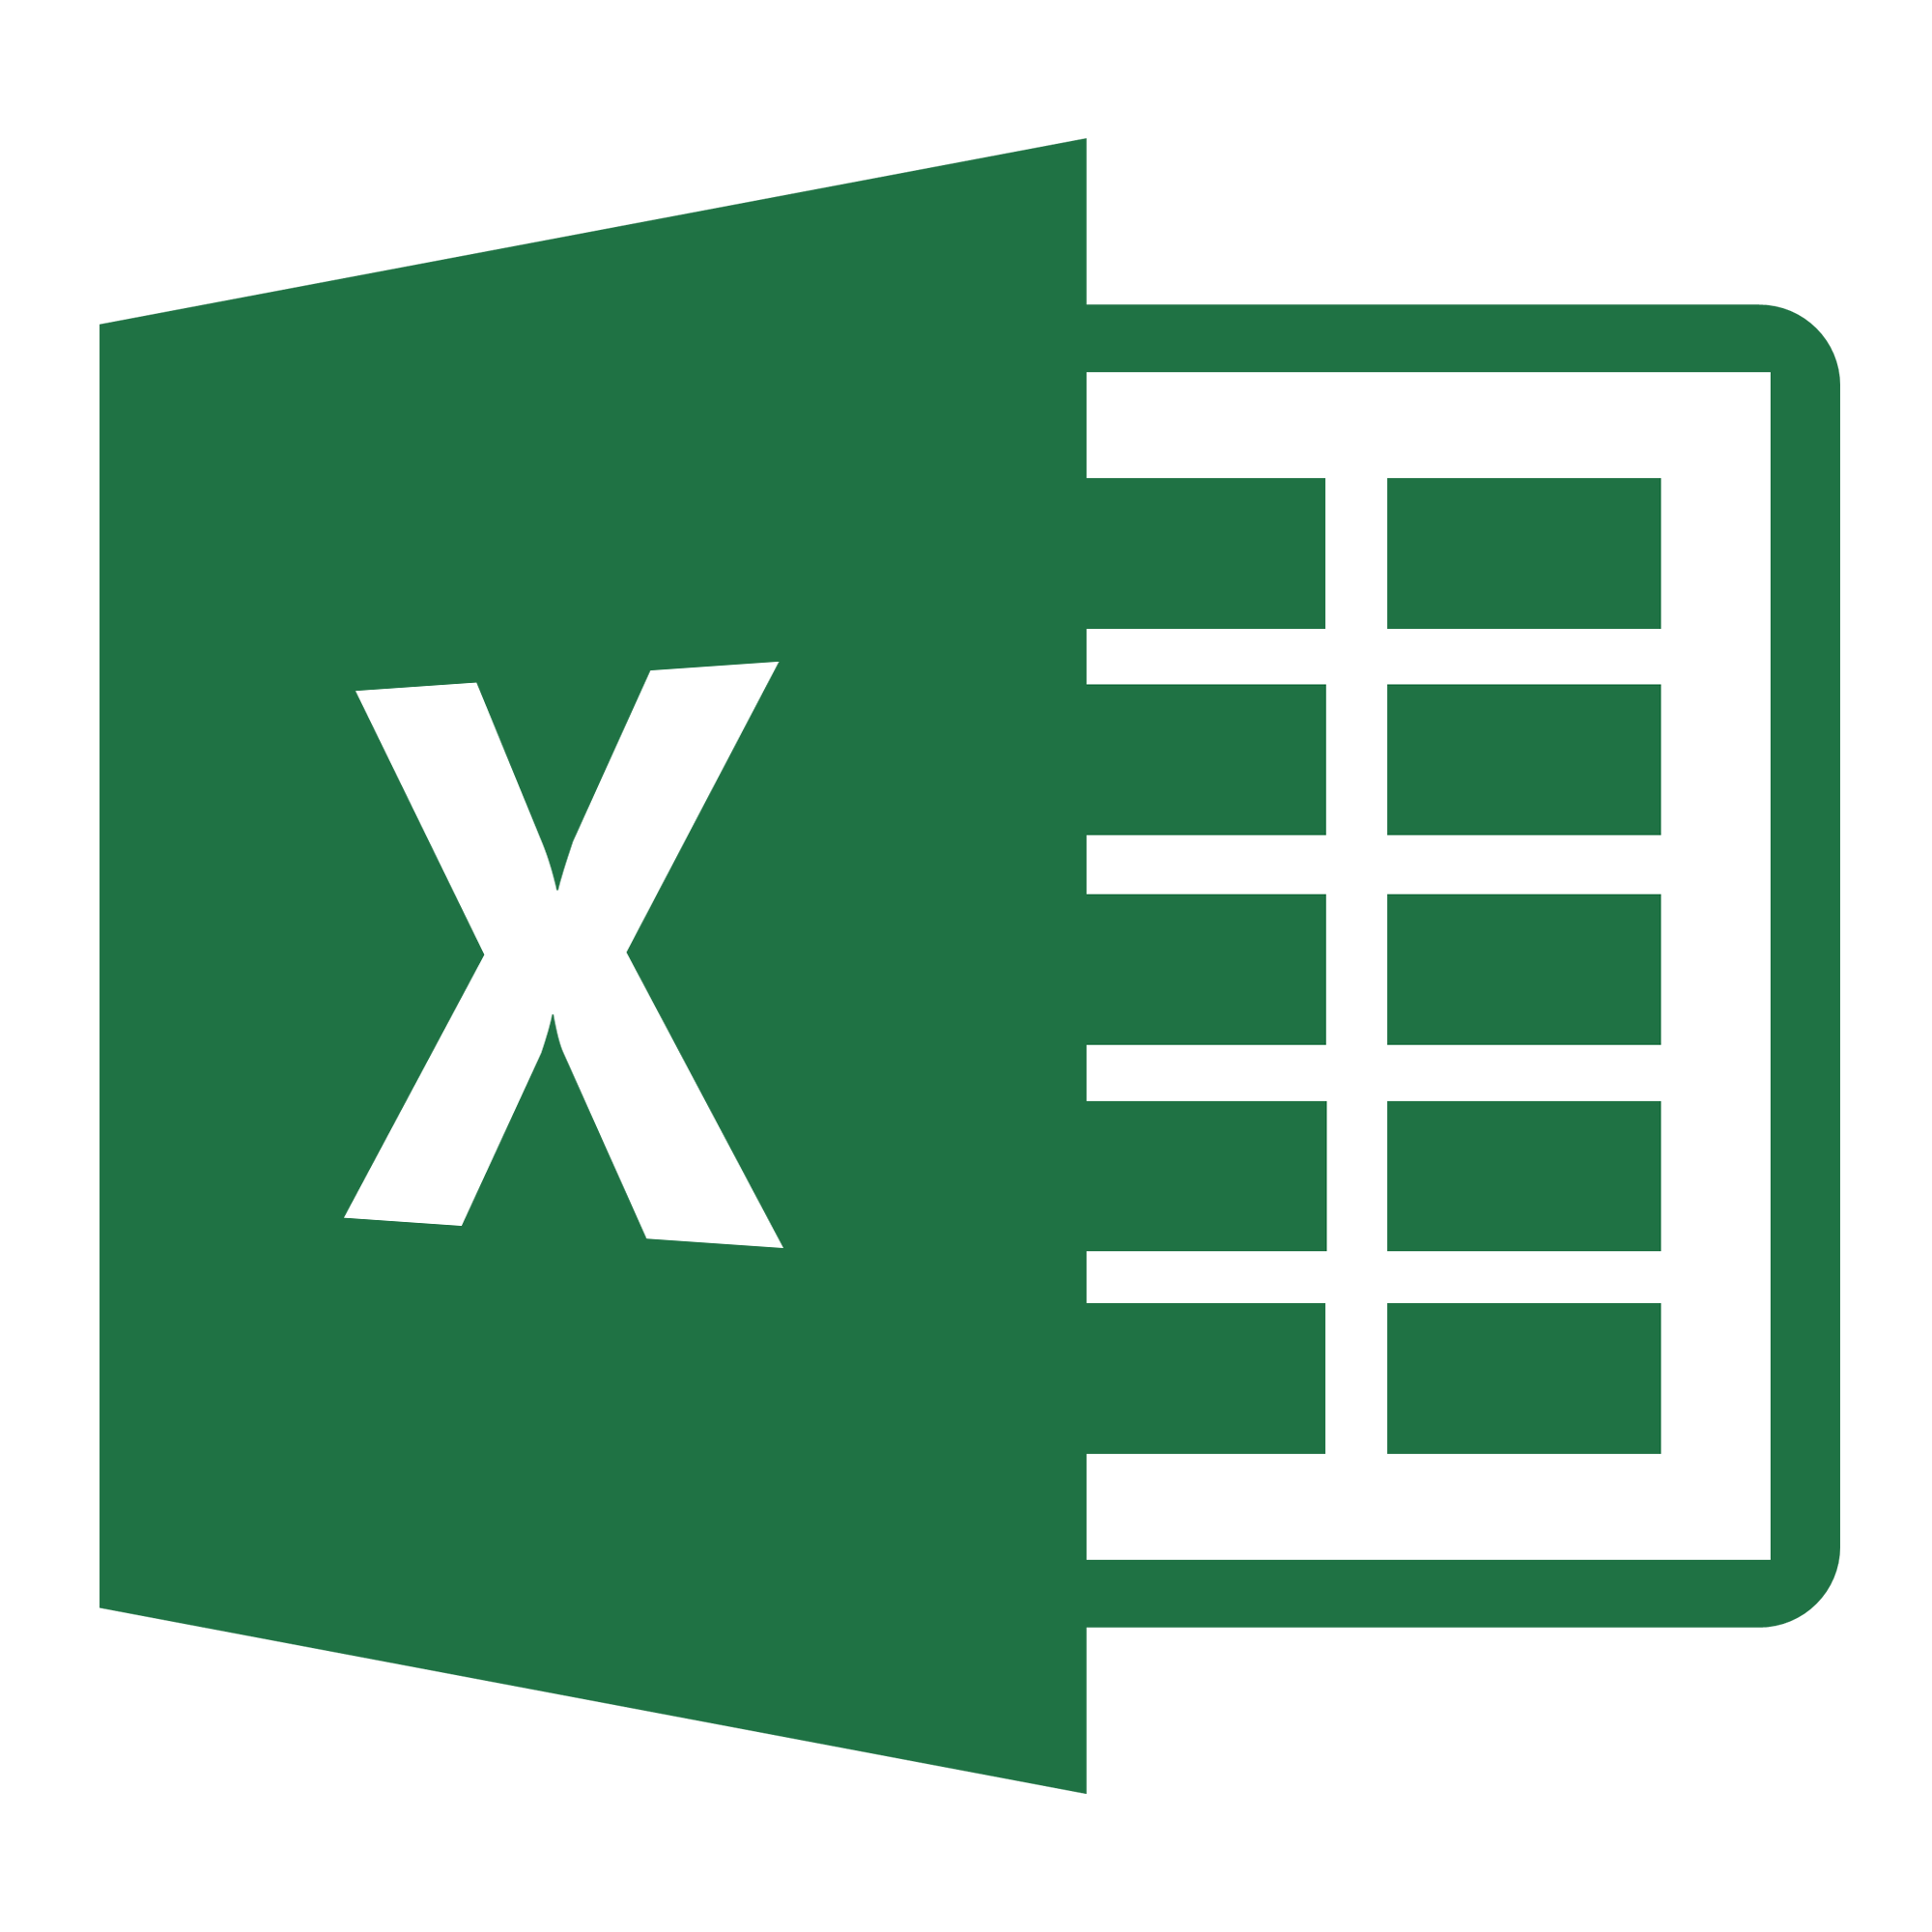 enter 1 page worth of data into an excel spreadsheet